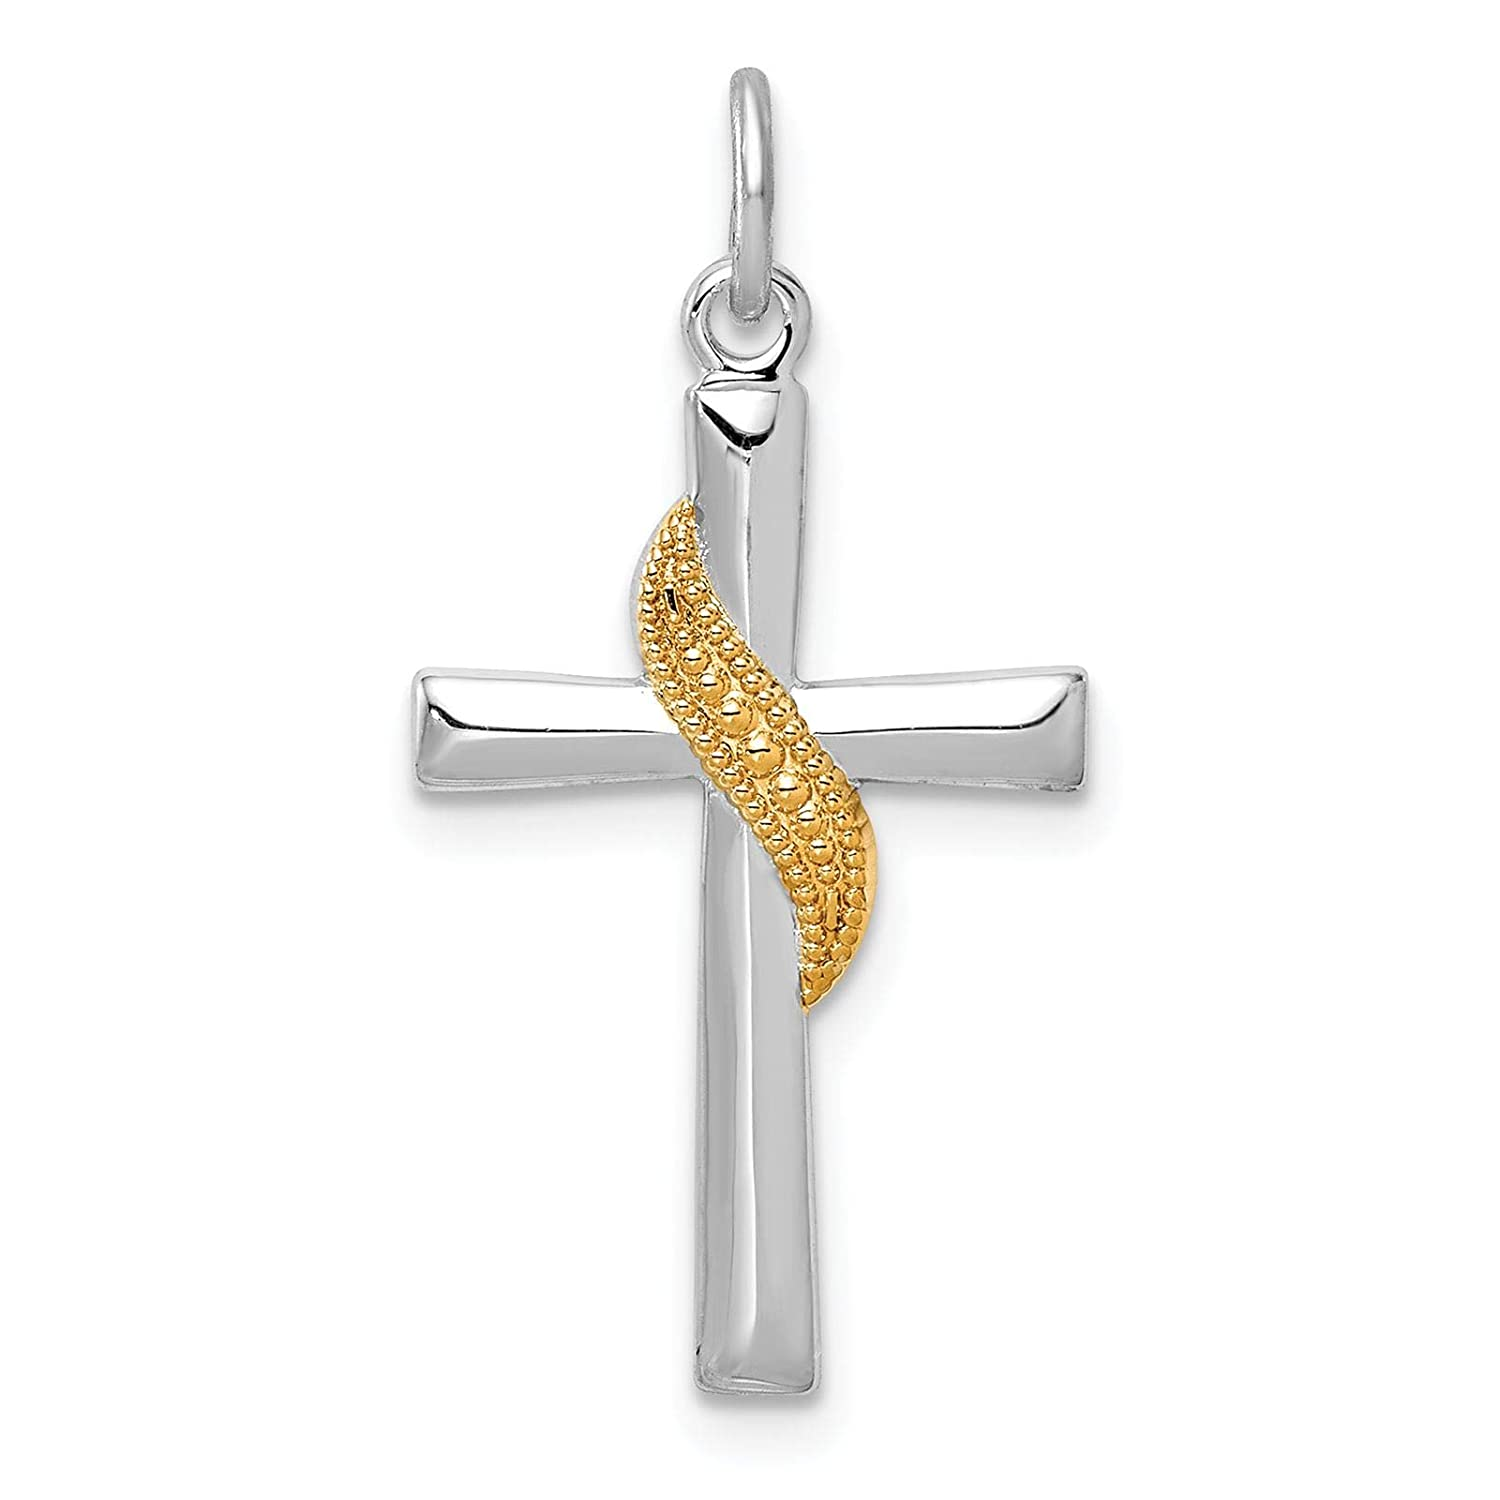 925 Sterling Silver Rhodium-plated /& Gold-tone Cross Charm Pendant